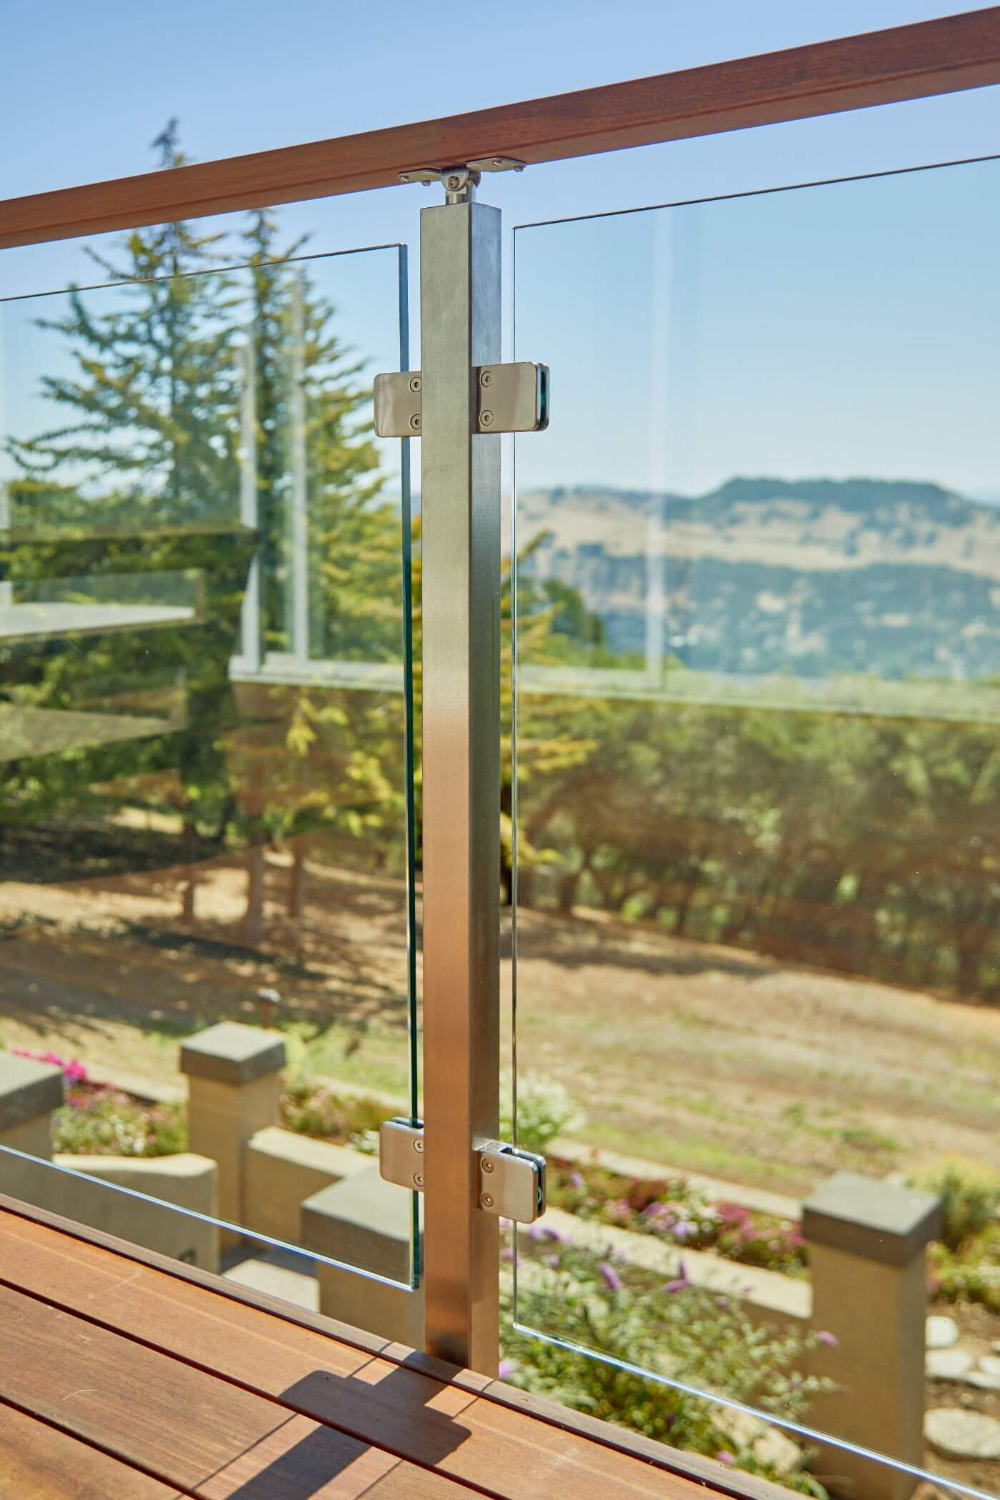 Glass Railing for a Scenic Deck (With images) | Glass ...